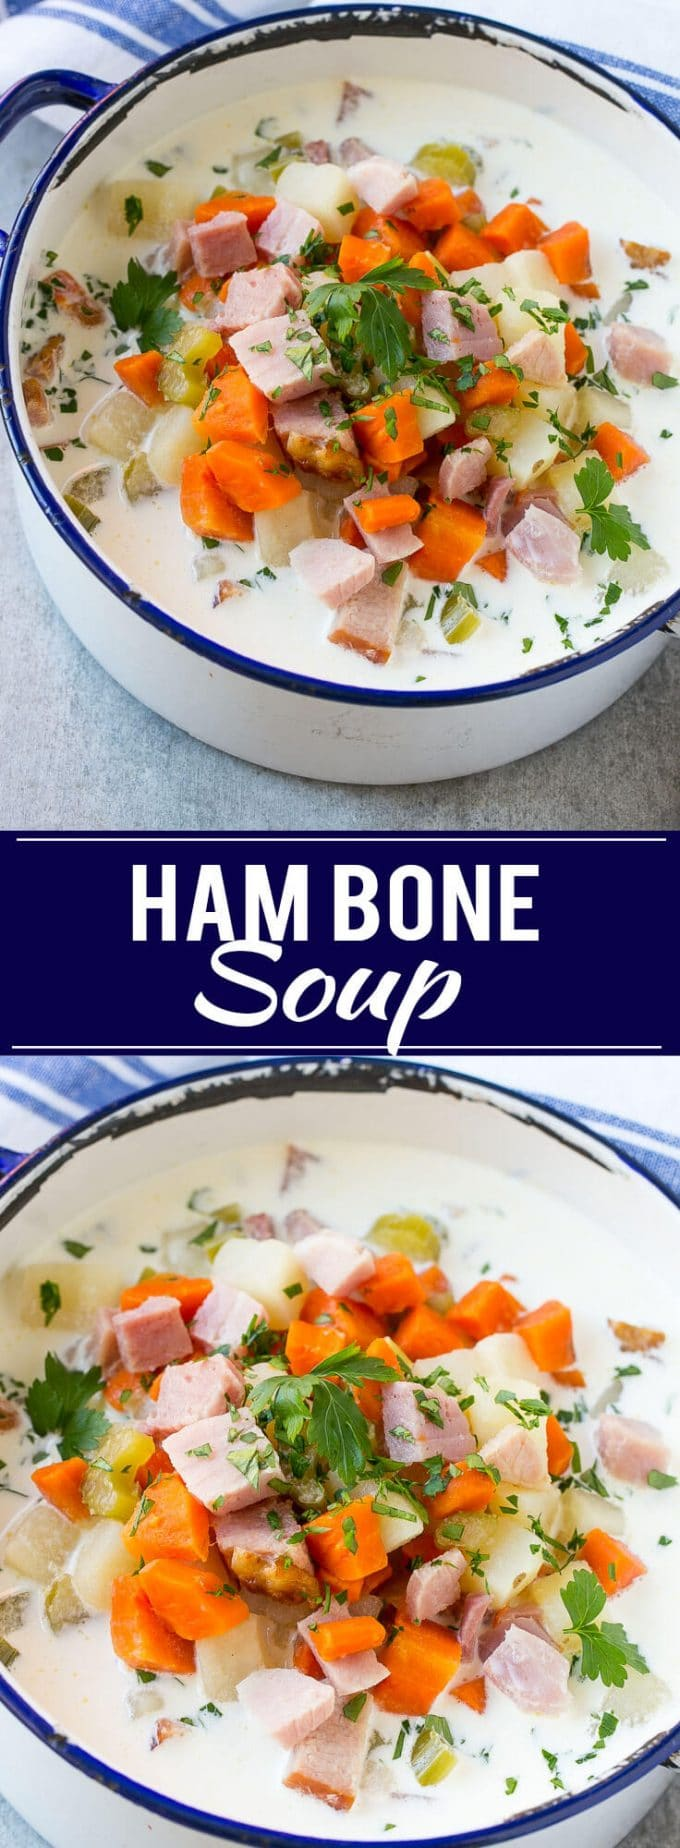 Ham Bone Soup | Ham Soup | Creamy Ham Soup | Soup Recipe | Ham and Potato Soup | Easy Soup